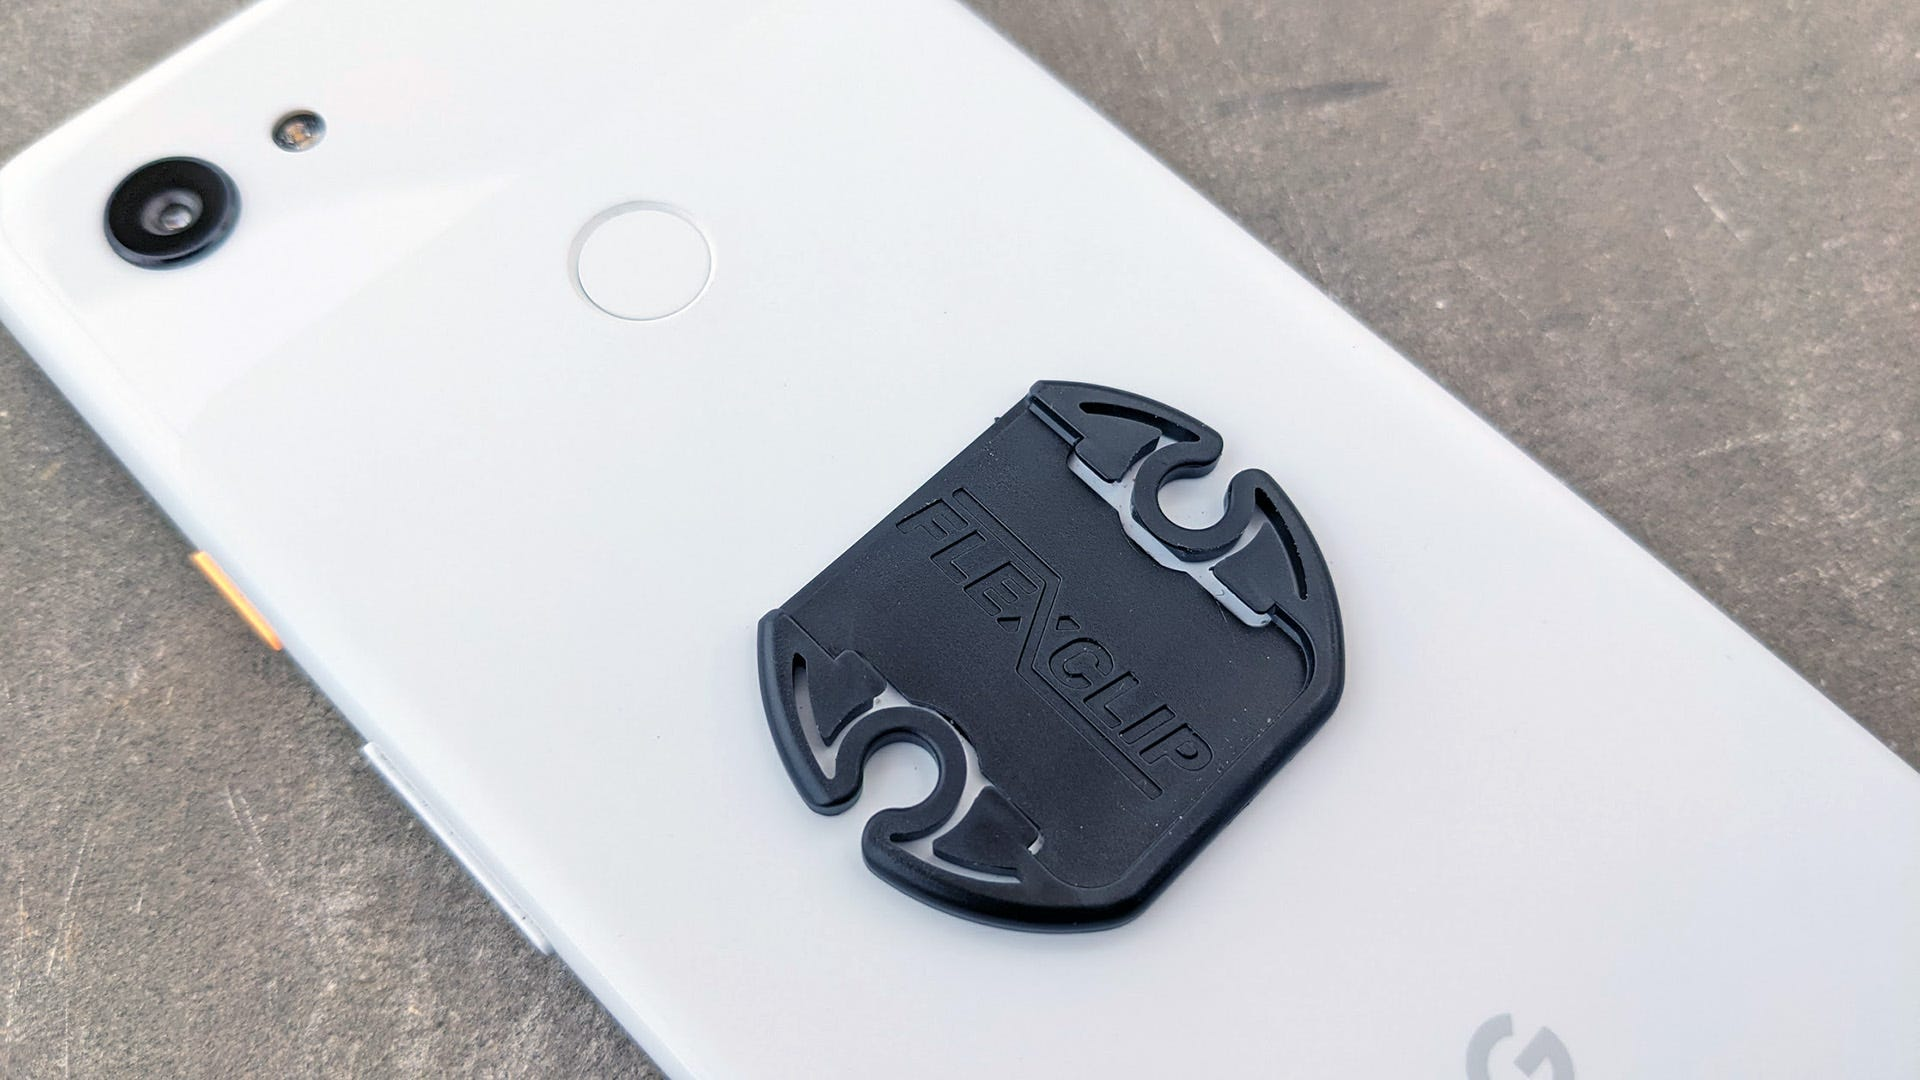 FlexClip on the back of a Pixel phone